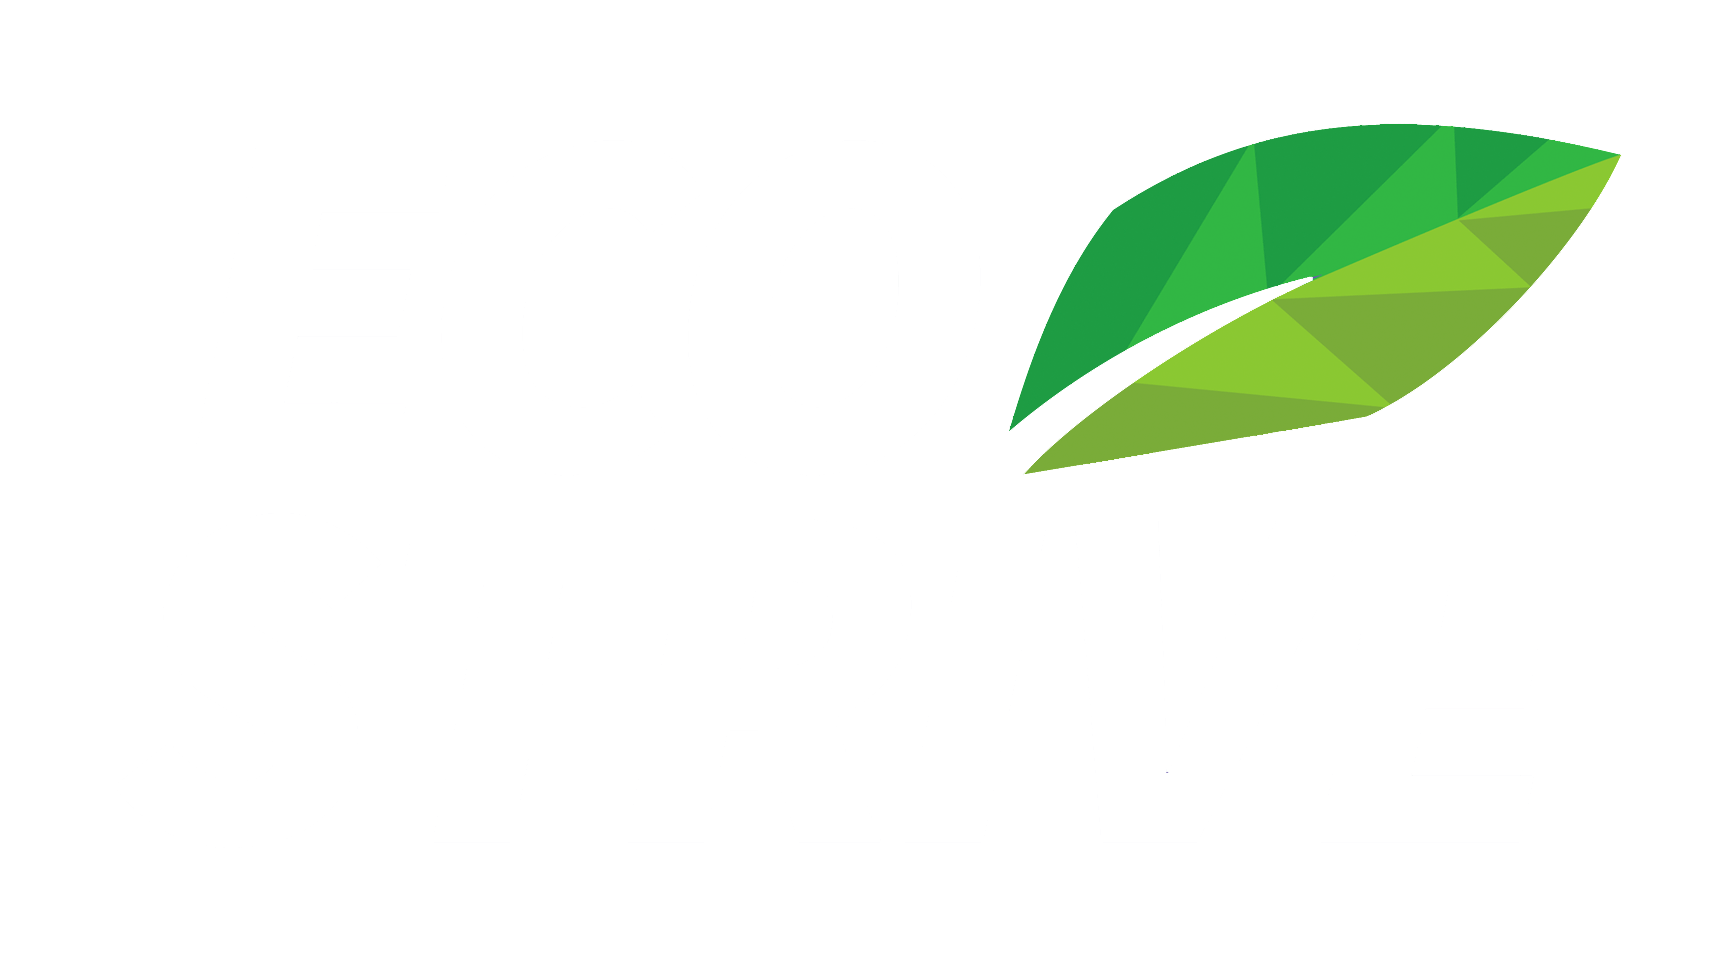 Eco Strive eco-friendly lawn care and landscaping company logo